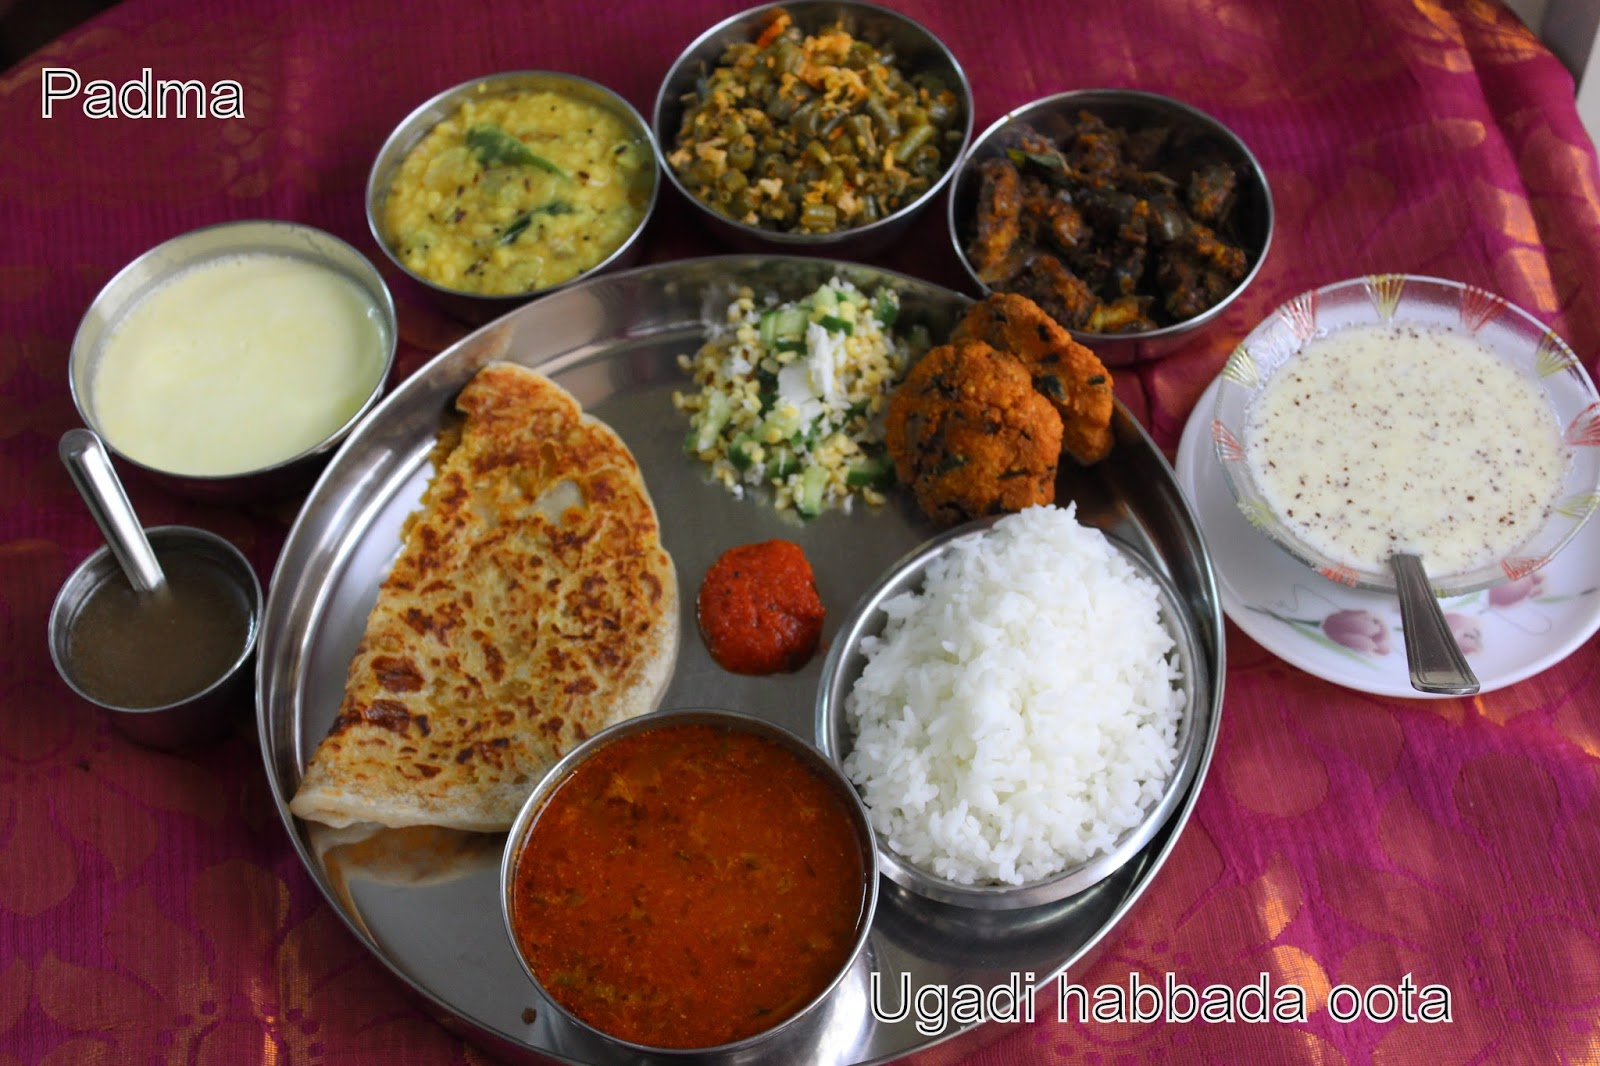 Plantain leafandhra recipes ugadi thali karnataka with holige obbattu saru or holige saru is a important dish in ugadi feast for kannada families its a type of thick rasam made with channadal cooked water forumfinder Choice Image